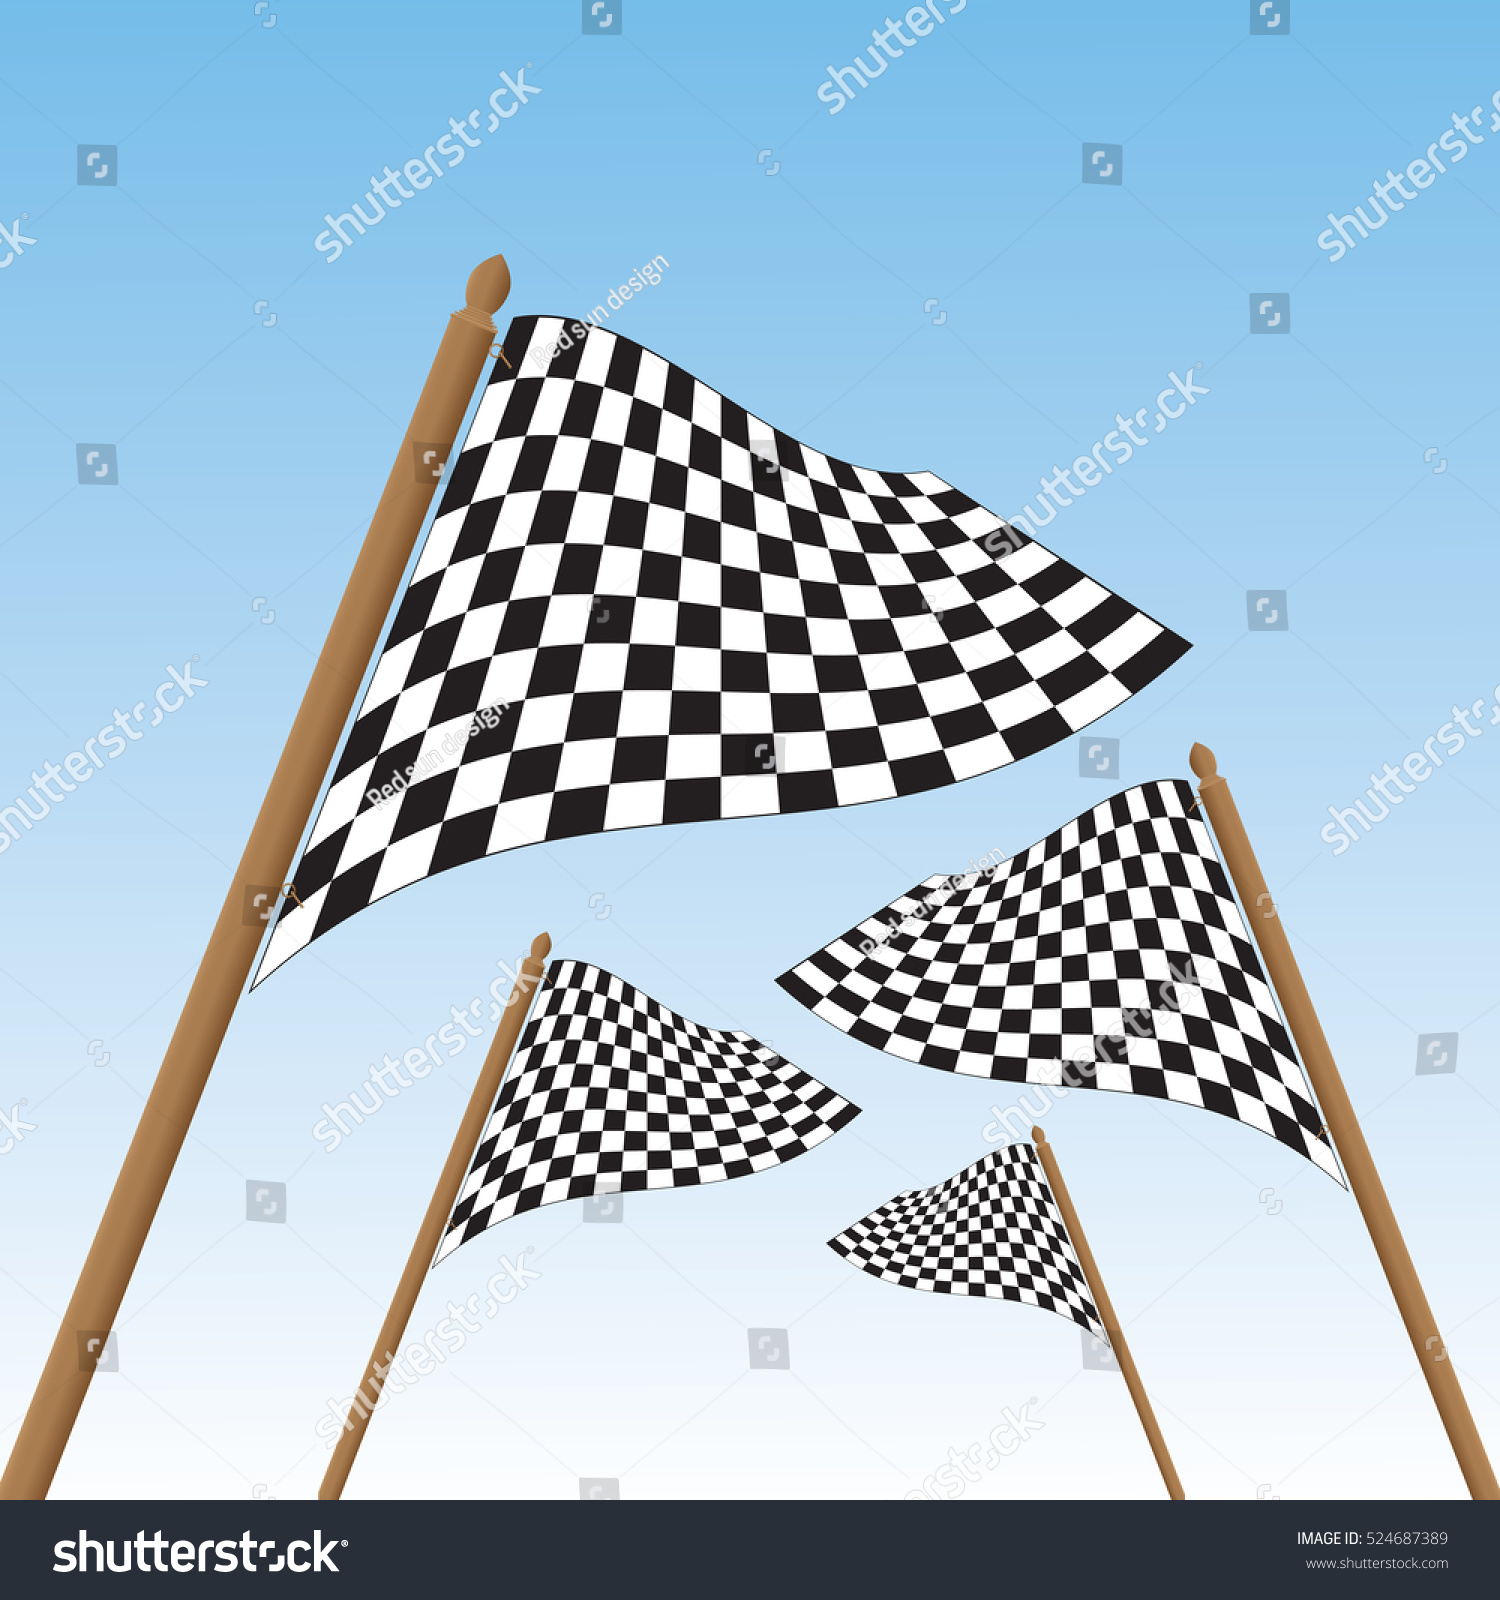 Checkered Flag. Racing Flag On Blue Background. Stock ...